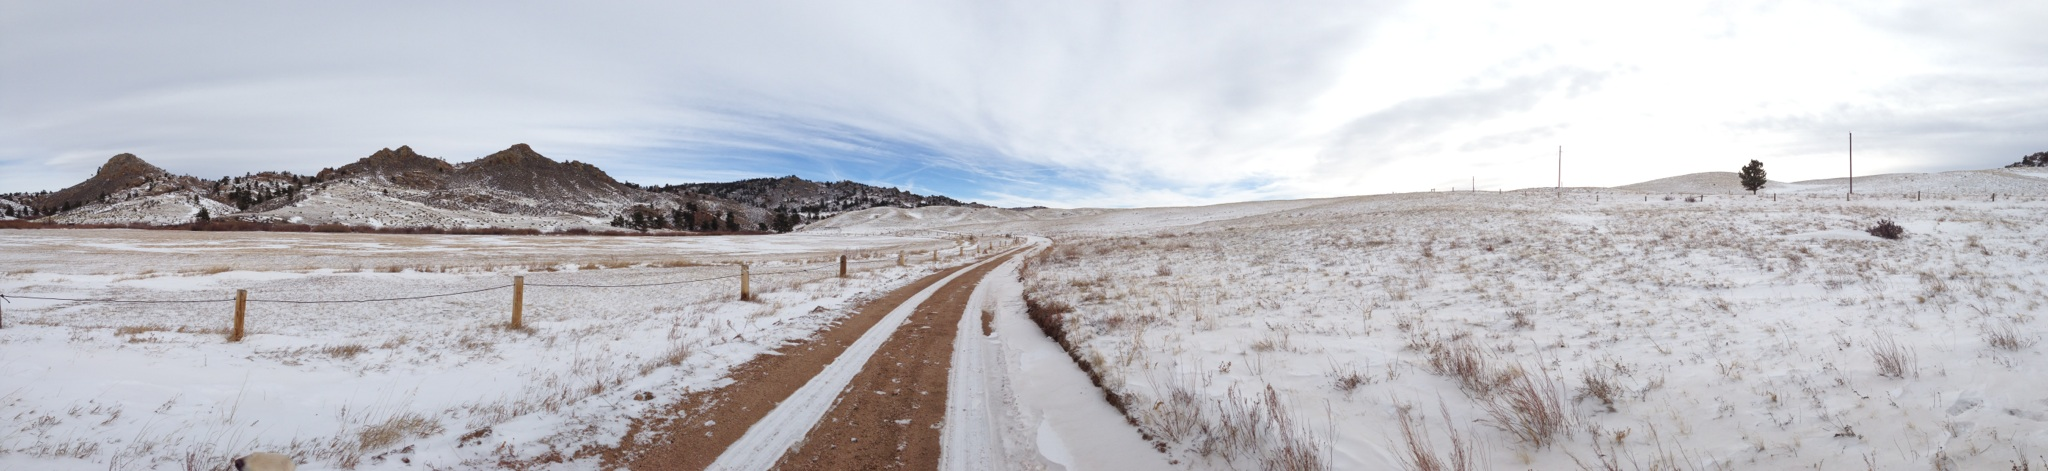 12.29.12 Christmas 2012 in Wyoming.